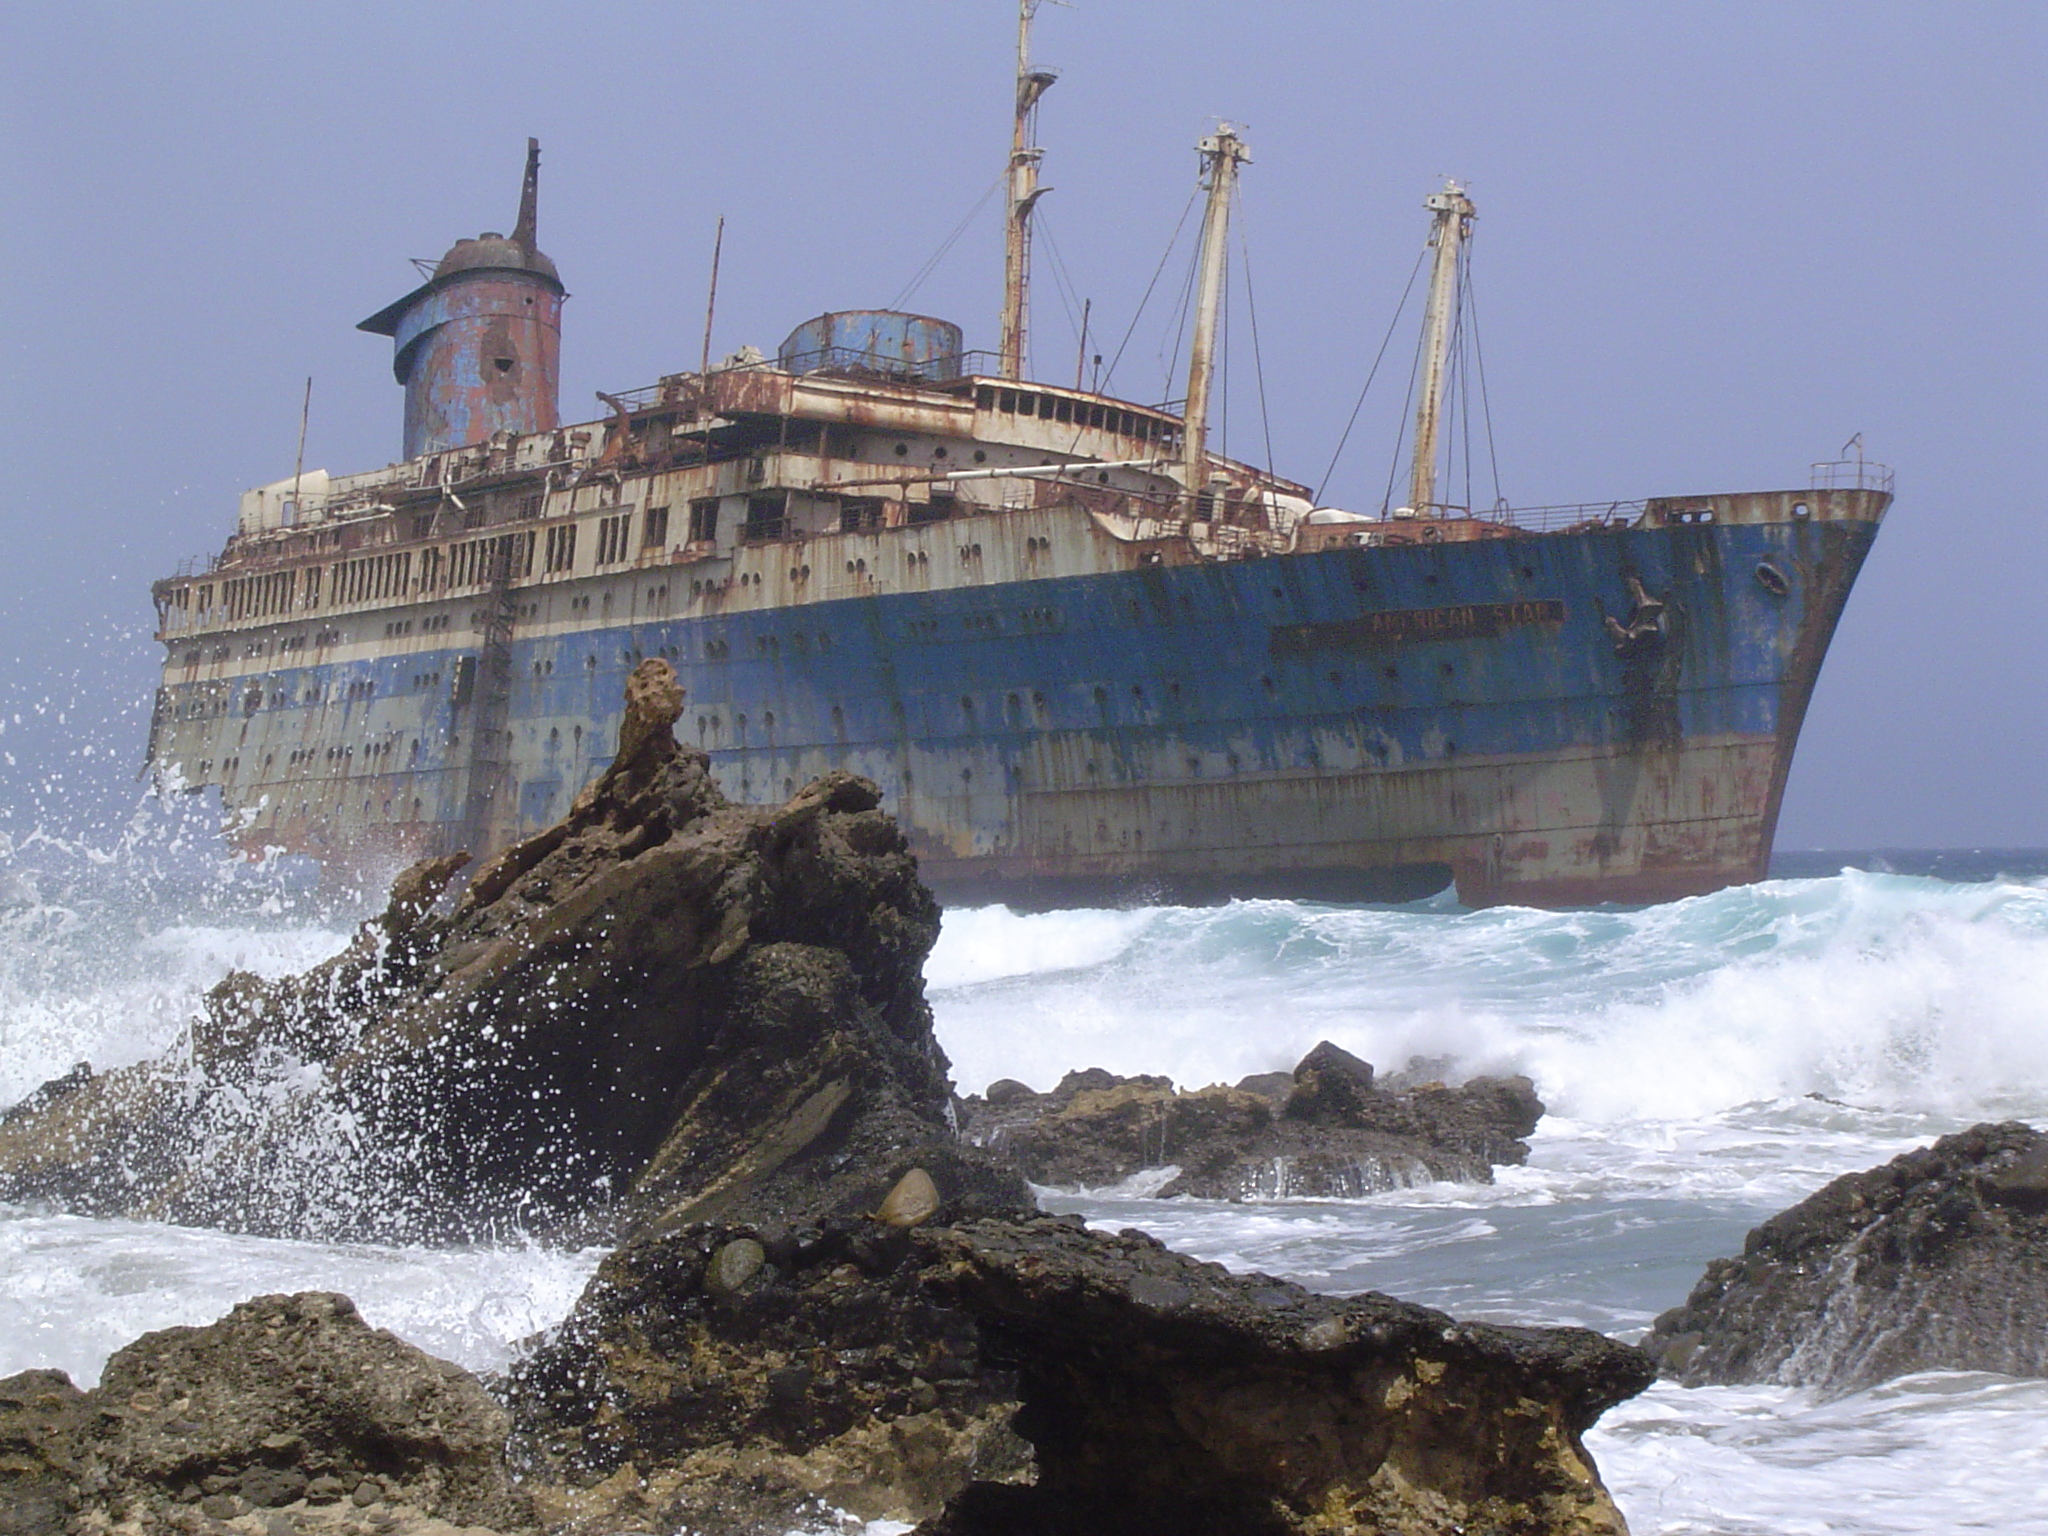 File:Shipwreck of the SS American Star on the shore of Fuerteventura ...